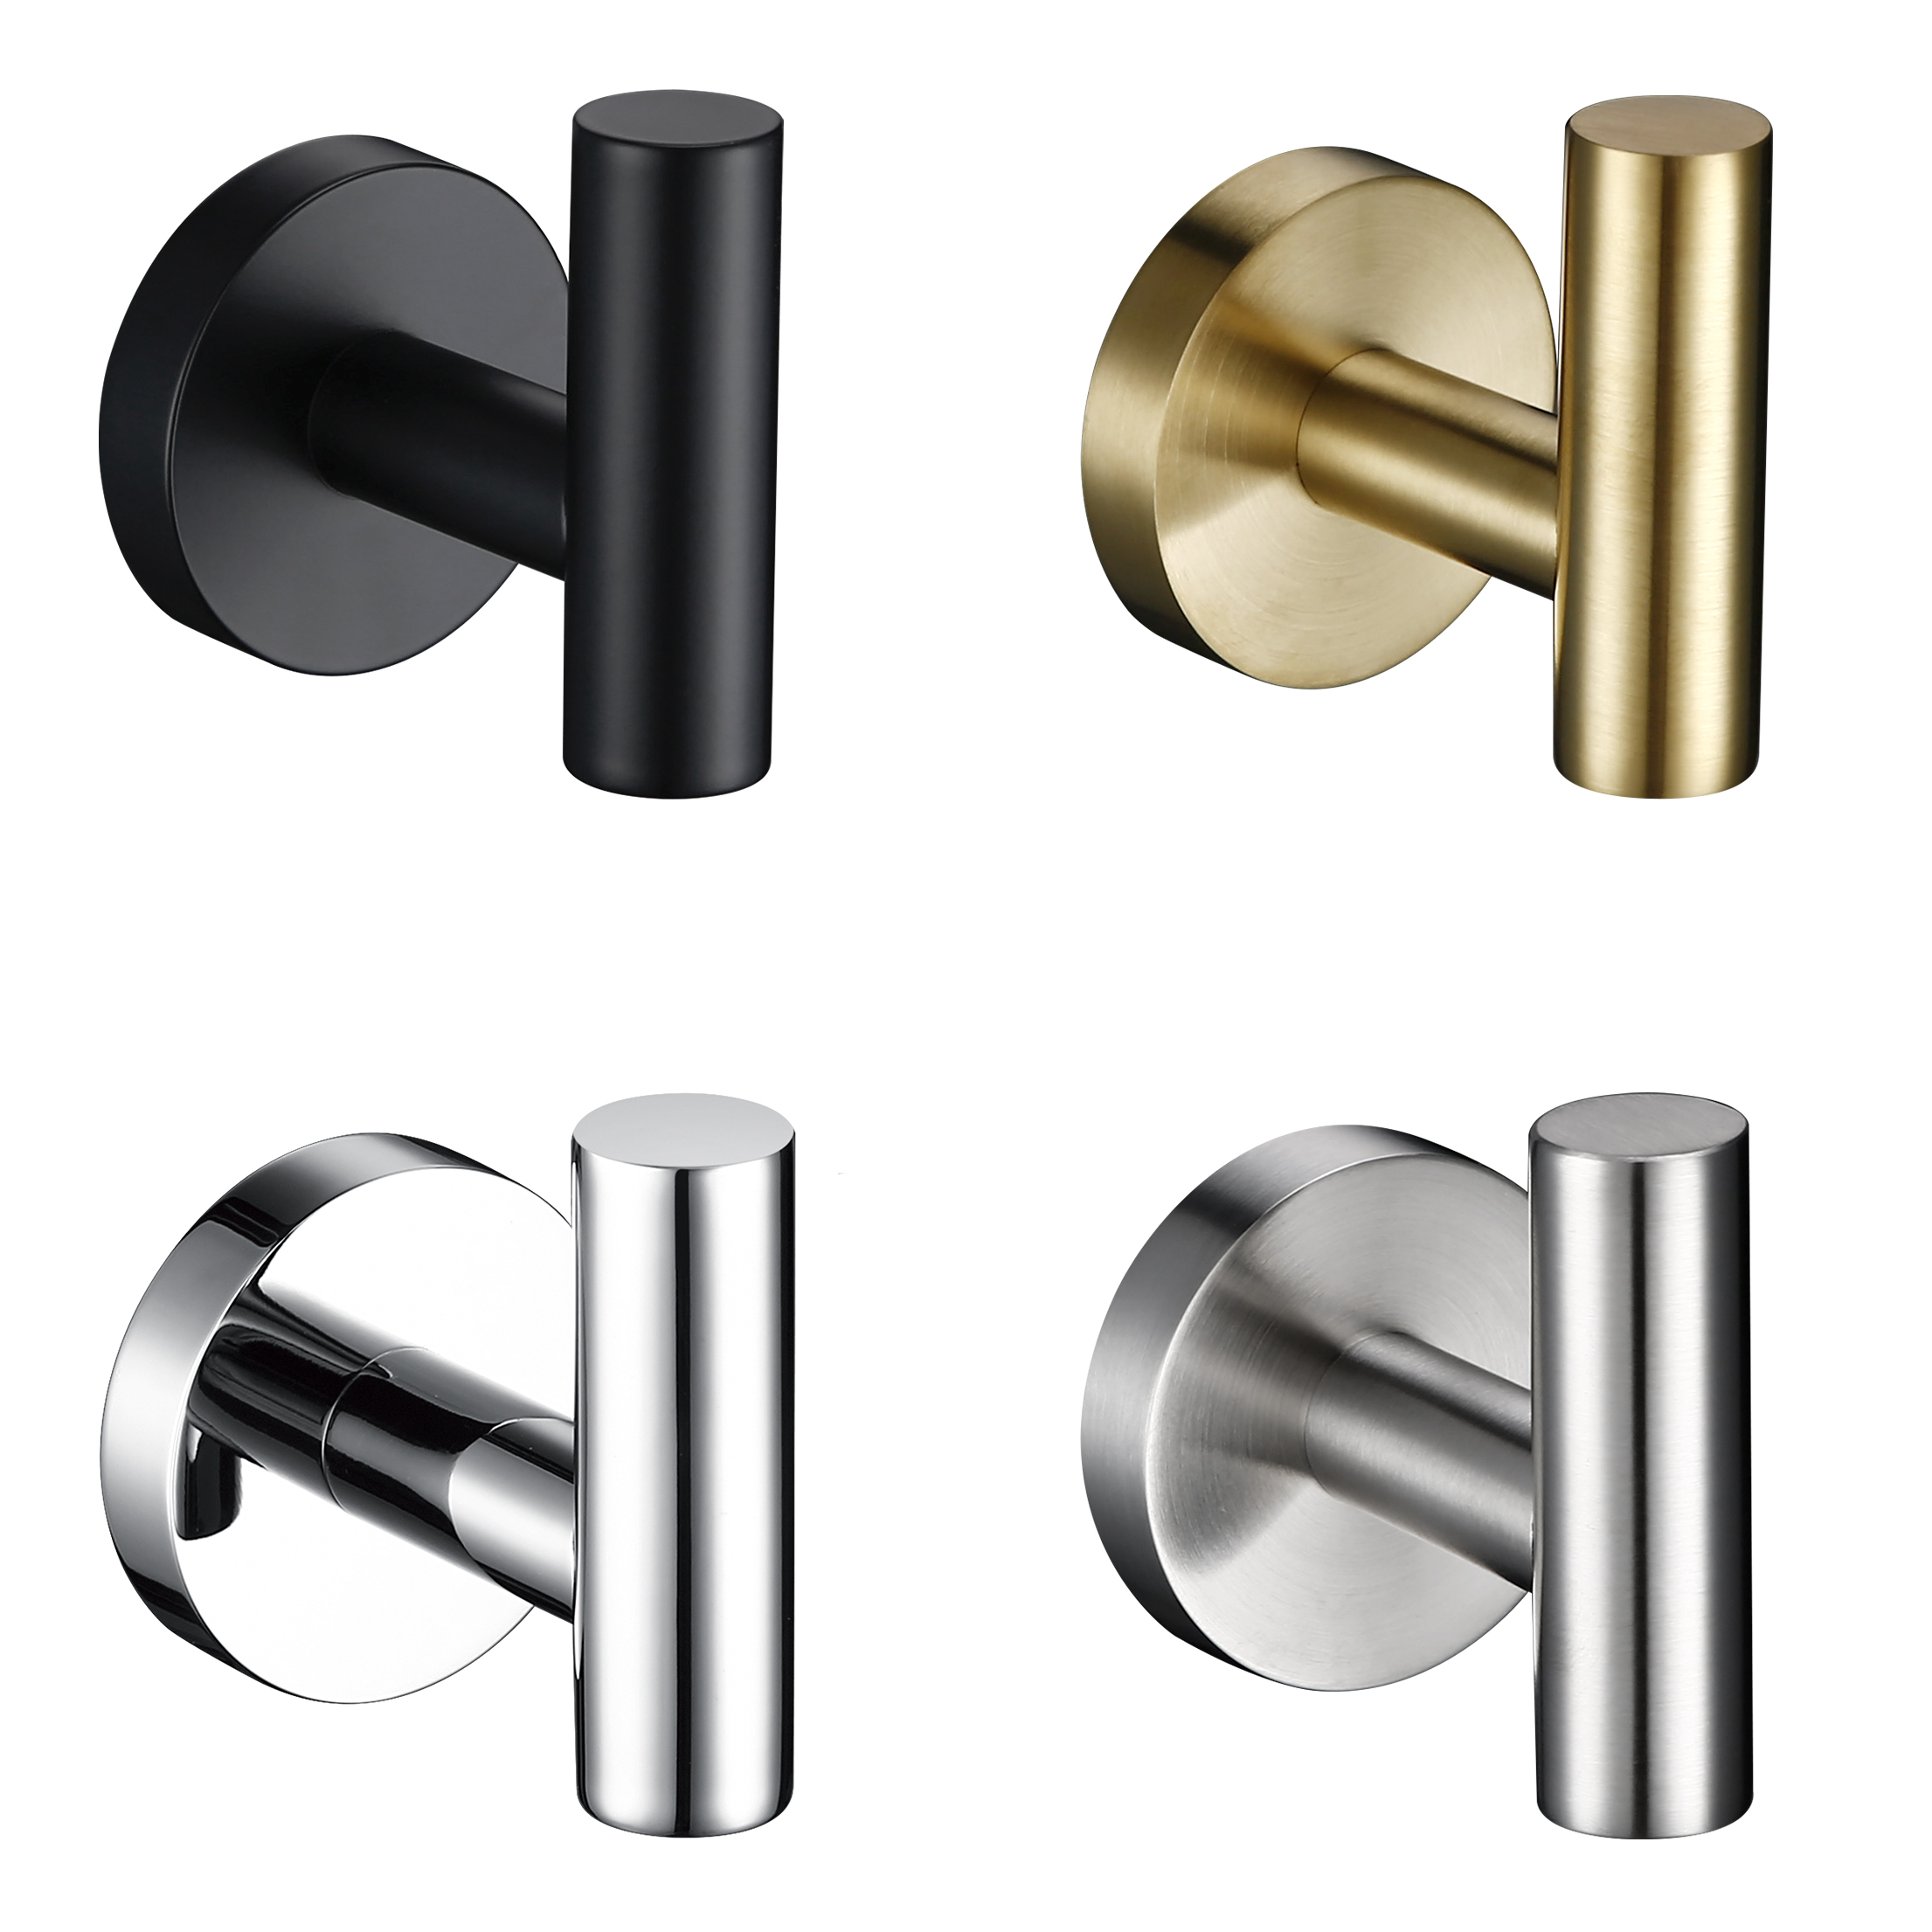 Circle Stainless Steel Black Chrome Brushed Gold Nickel Bathroom Kitchen Bedroom Hardware Pendant Clothes Wall Hook